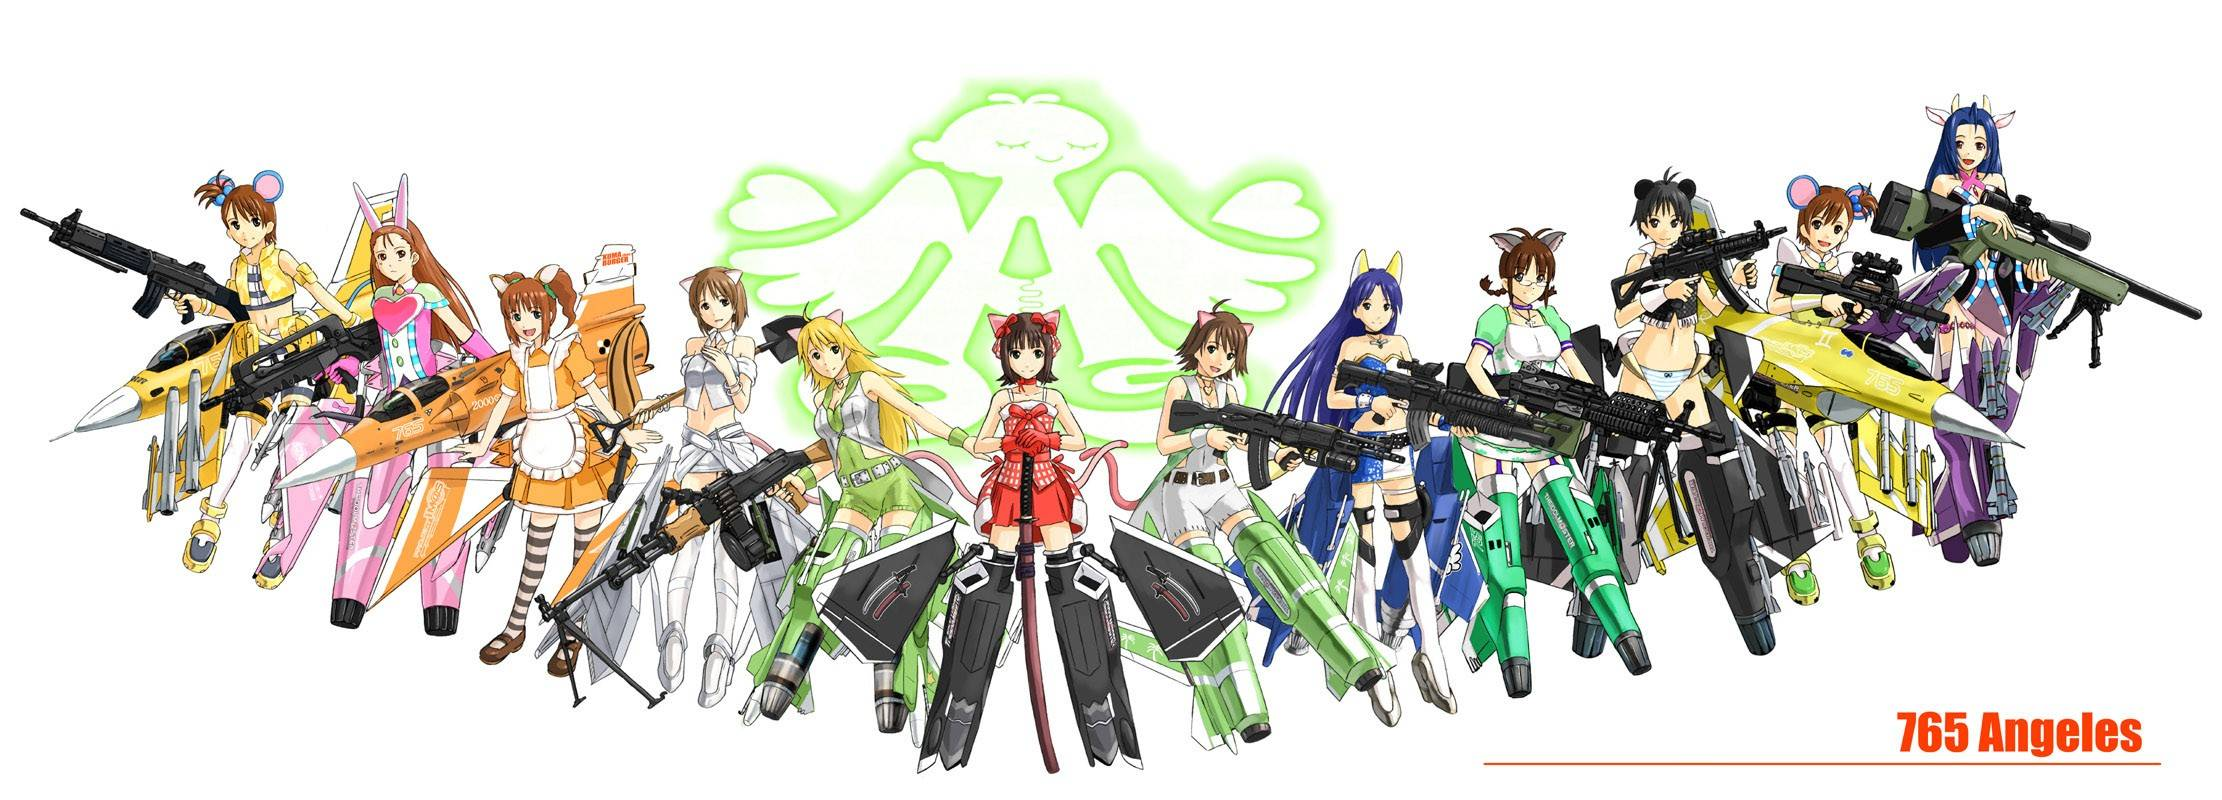 Mecha Musume group - Anime & Manga Wallpaper